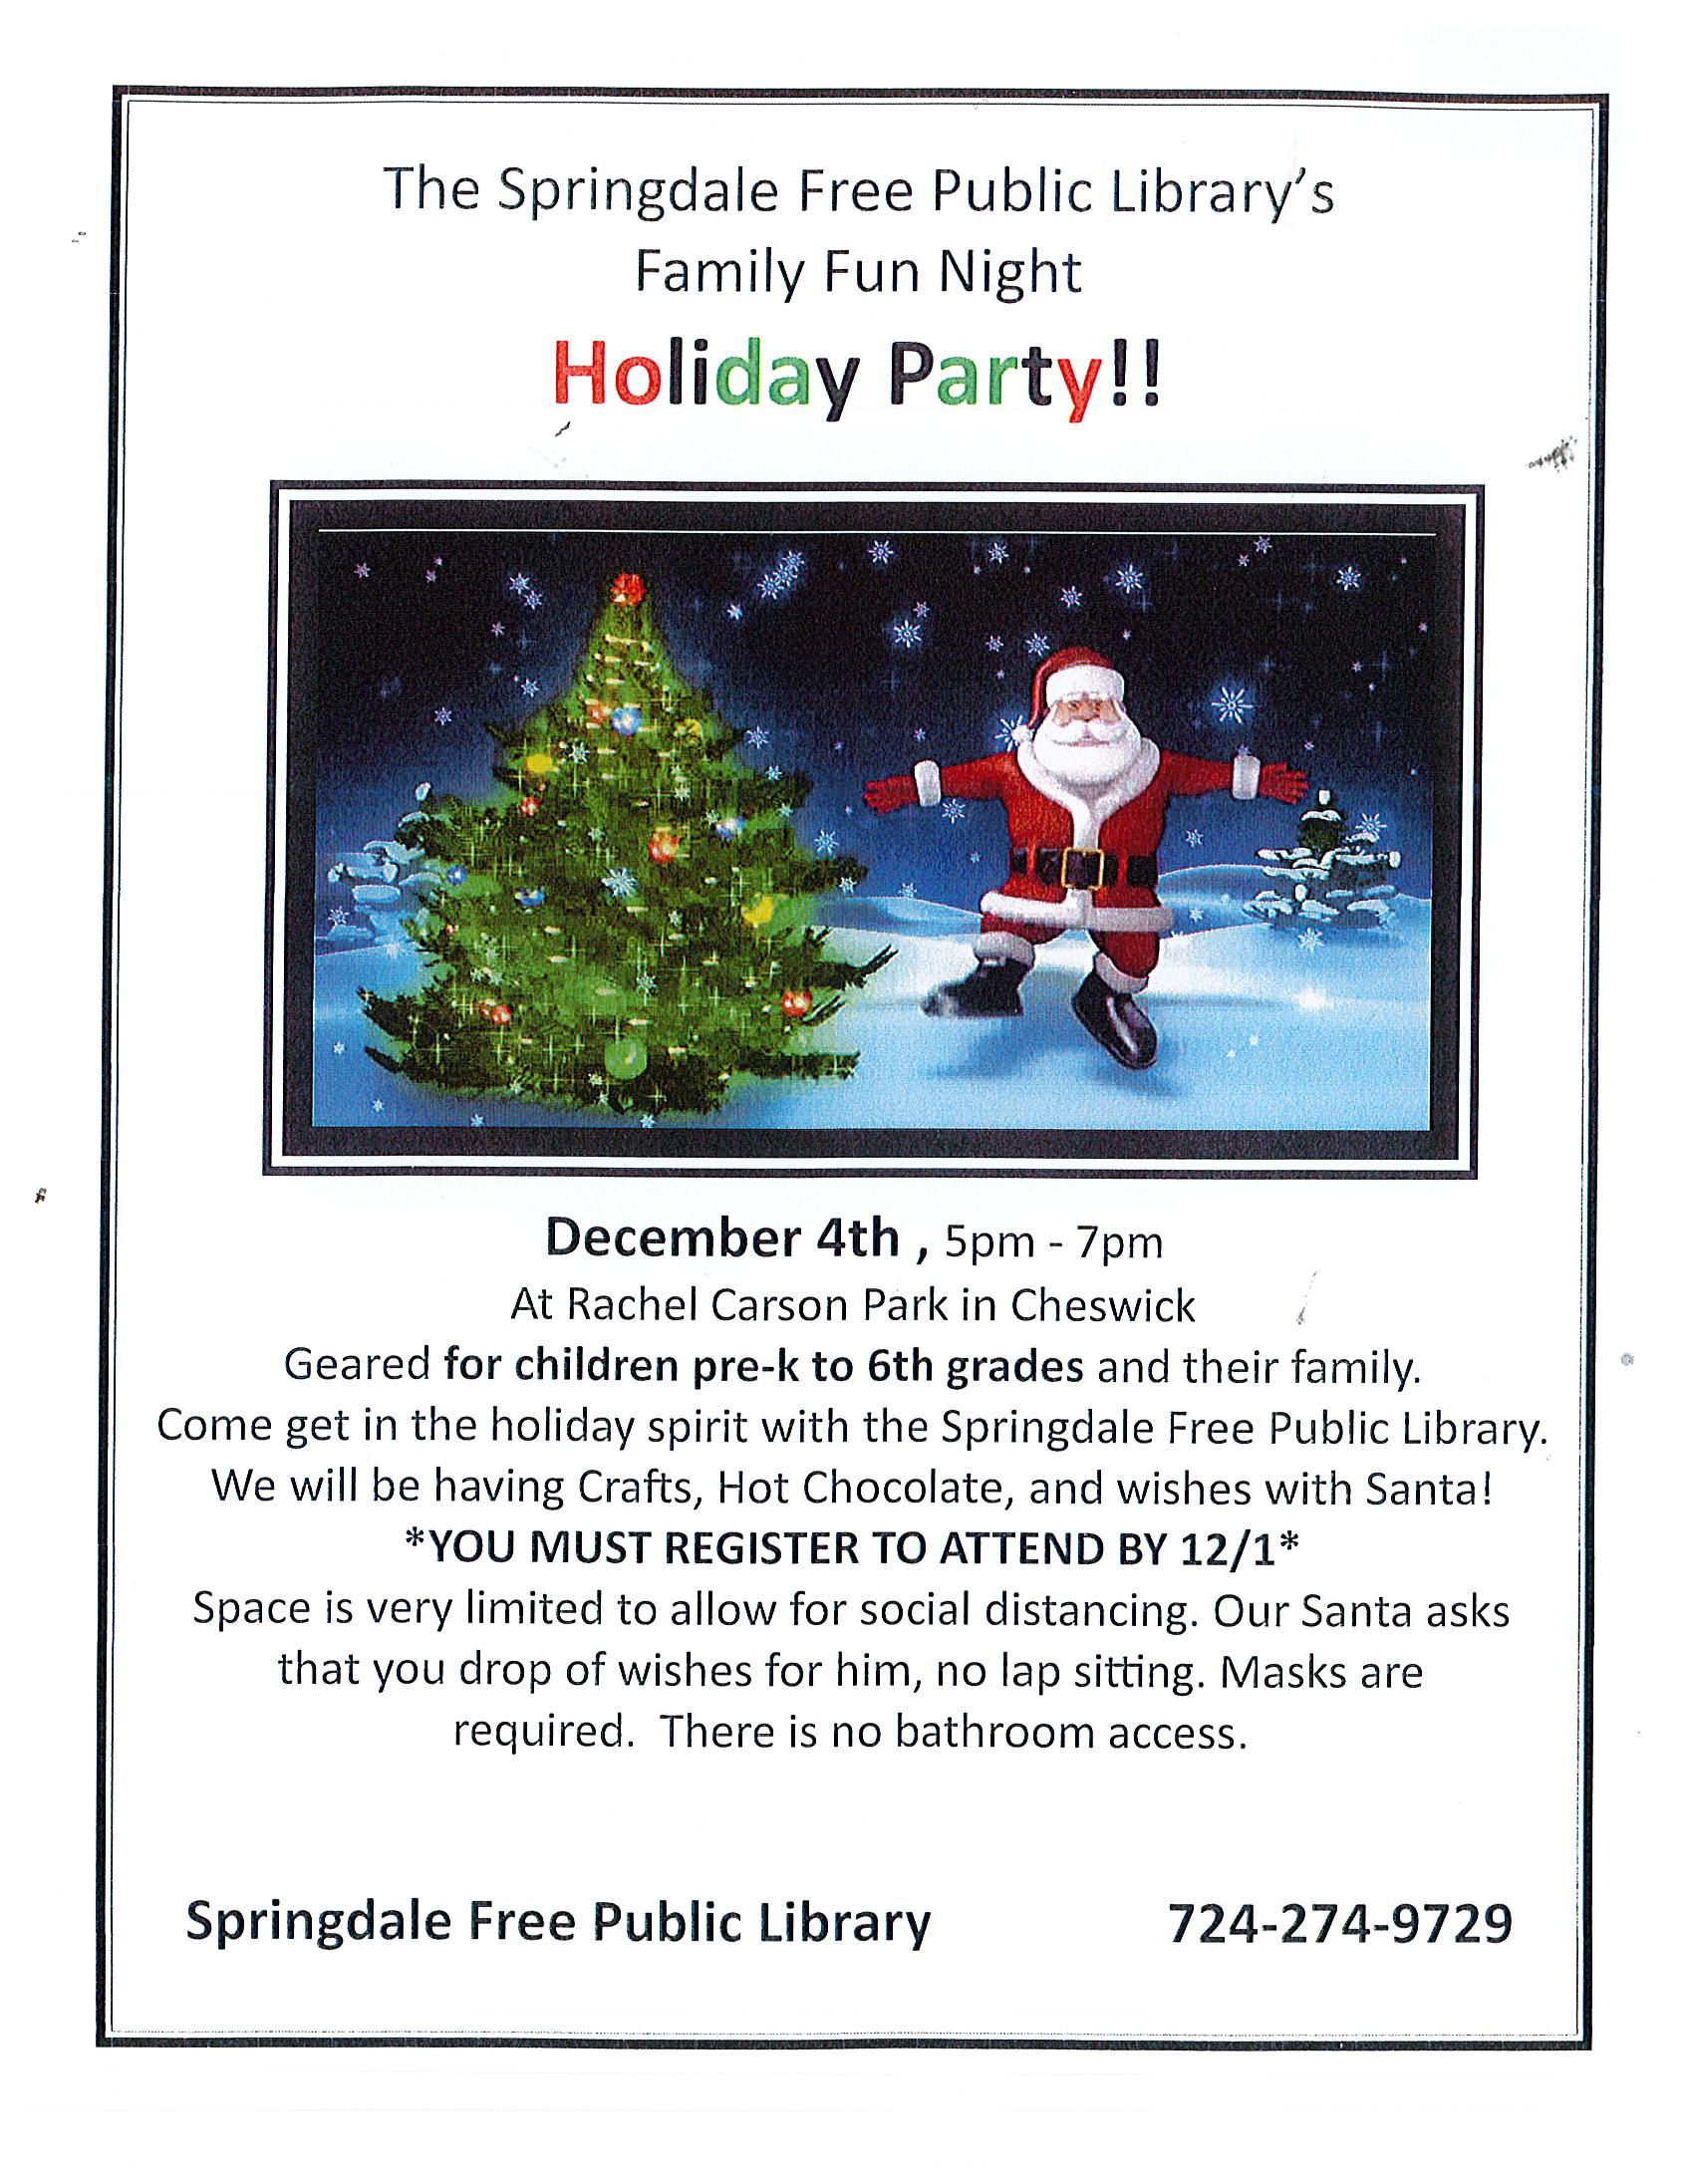 **CANCELED** DUE TO THE RISE IN COVID-19 CASES-Family Fun Night- Holiday Party   *Registration Required* 724-274-9729